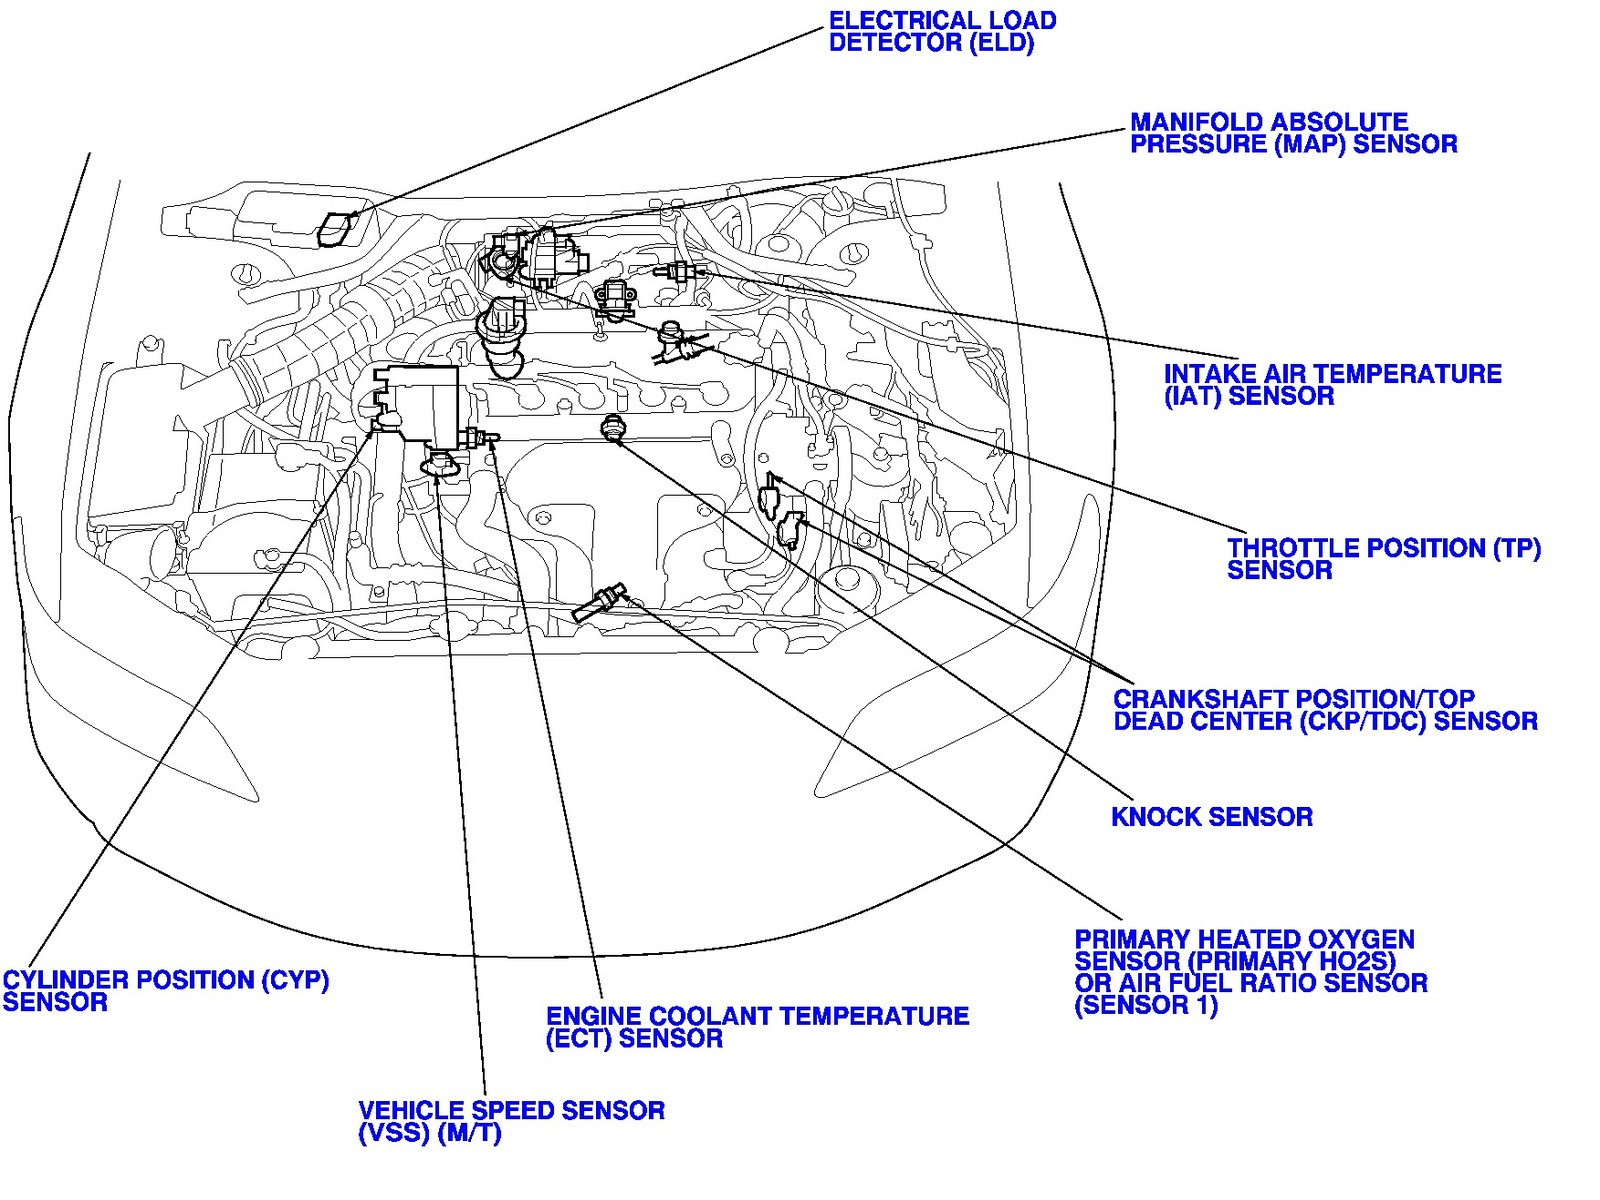 hight resolution of 99 accord engine diagram data wiring diagram preview 1999 honda accord v6 engine diagram